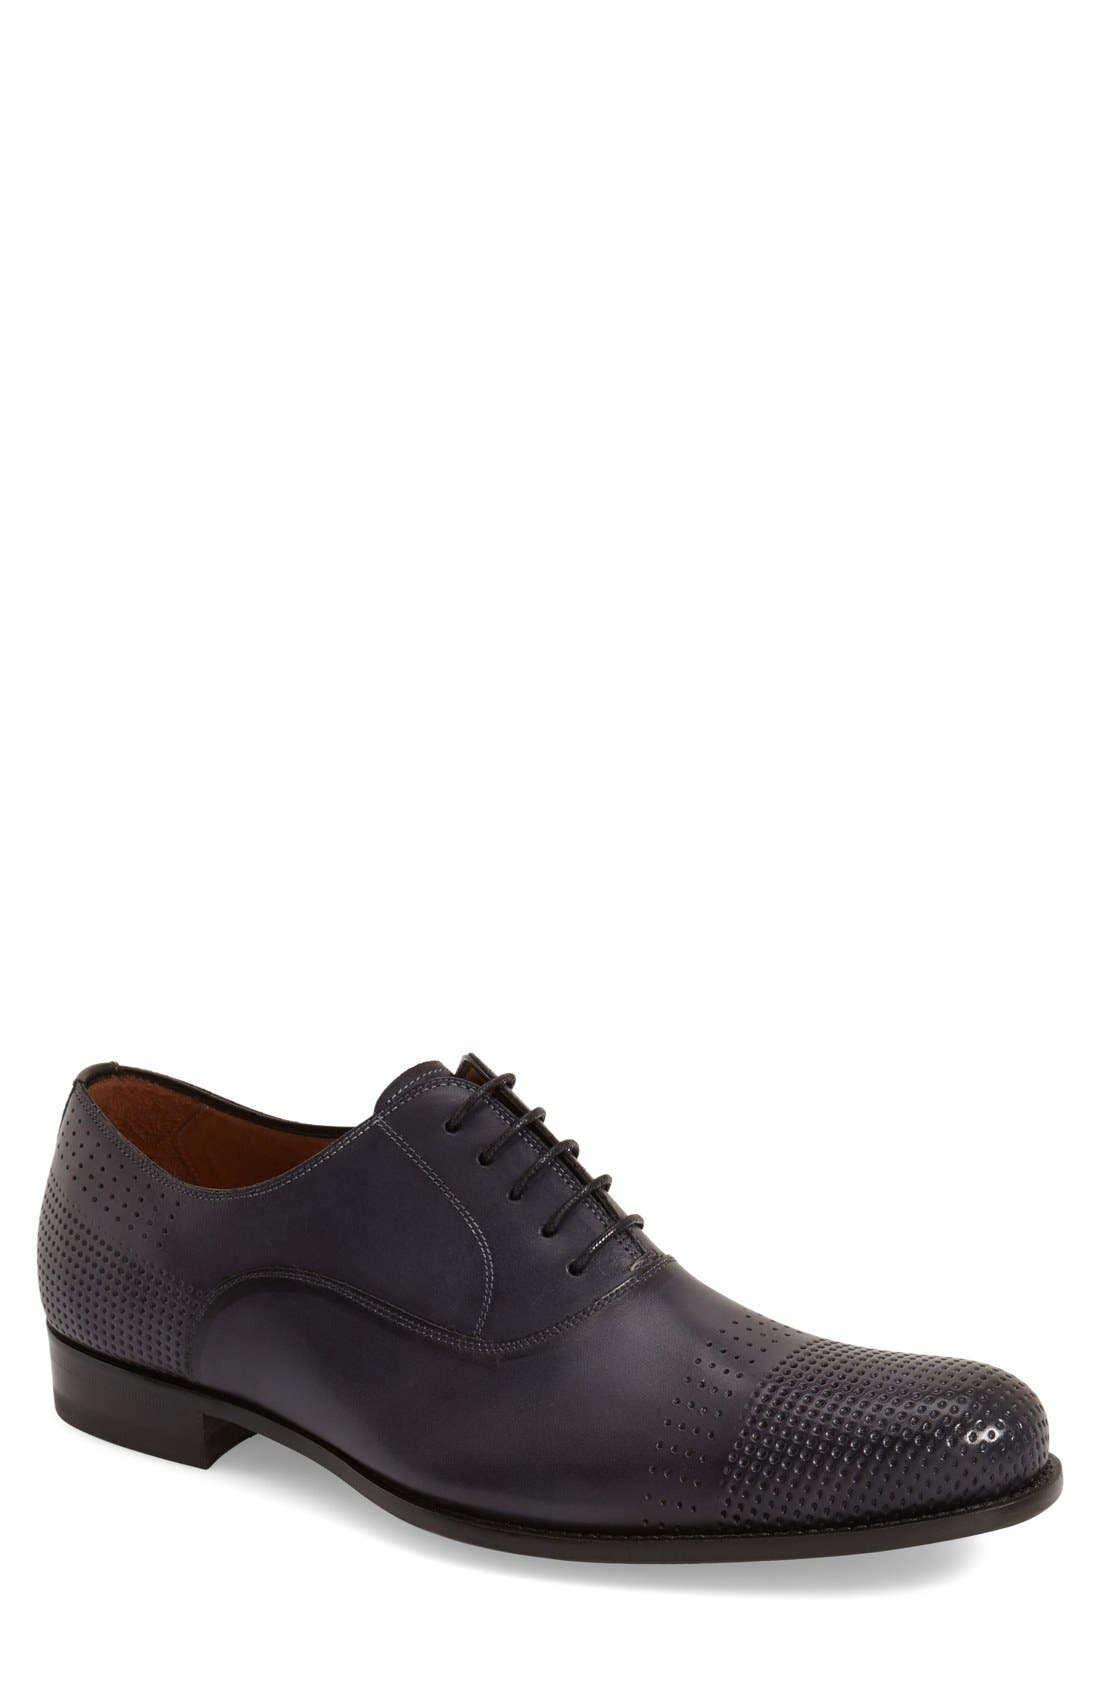 MEZLAN 'Bonet' Perforatetd Cap Toe Oxford